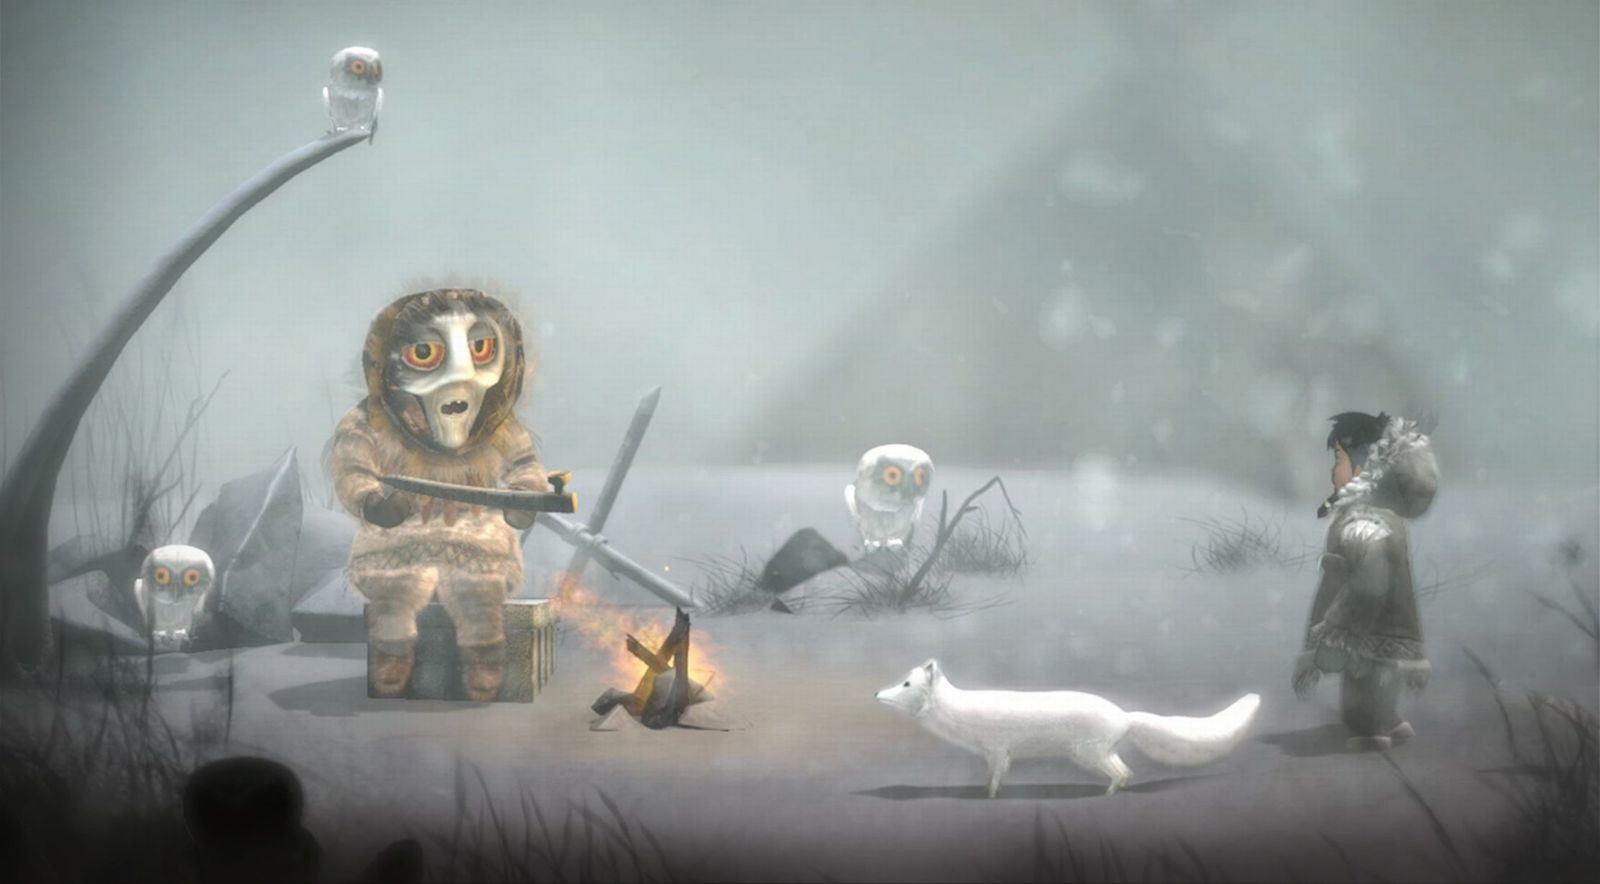 Never Alone playstation, xbox, игры, компьютерные игры